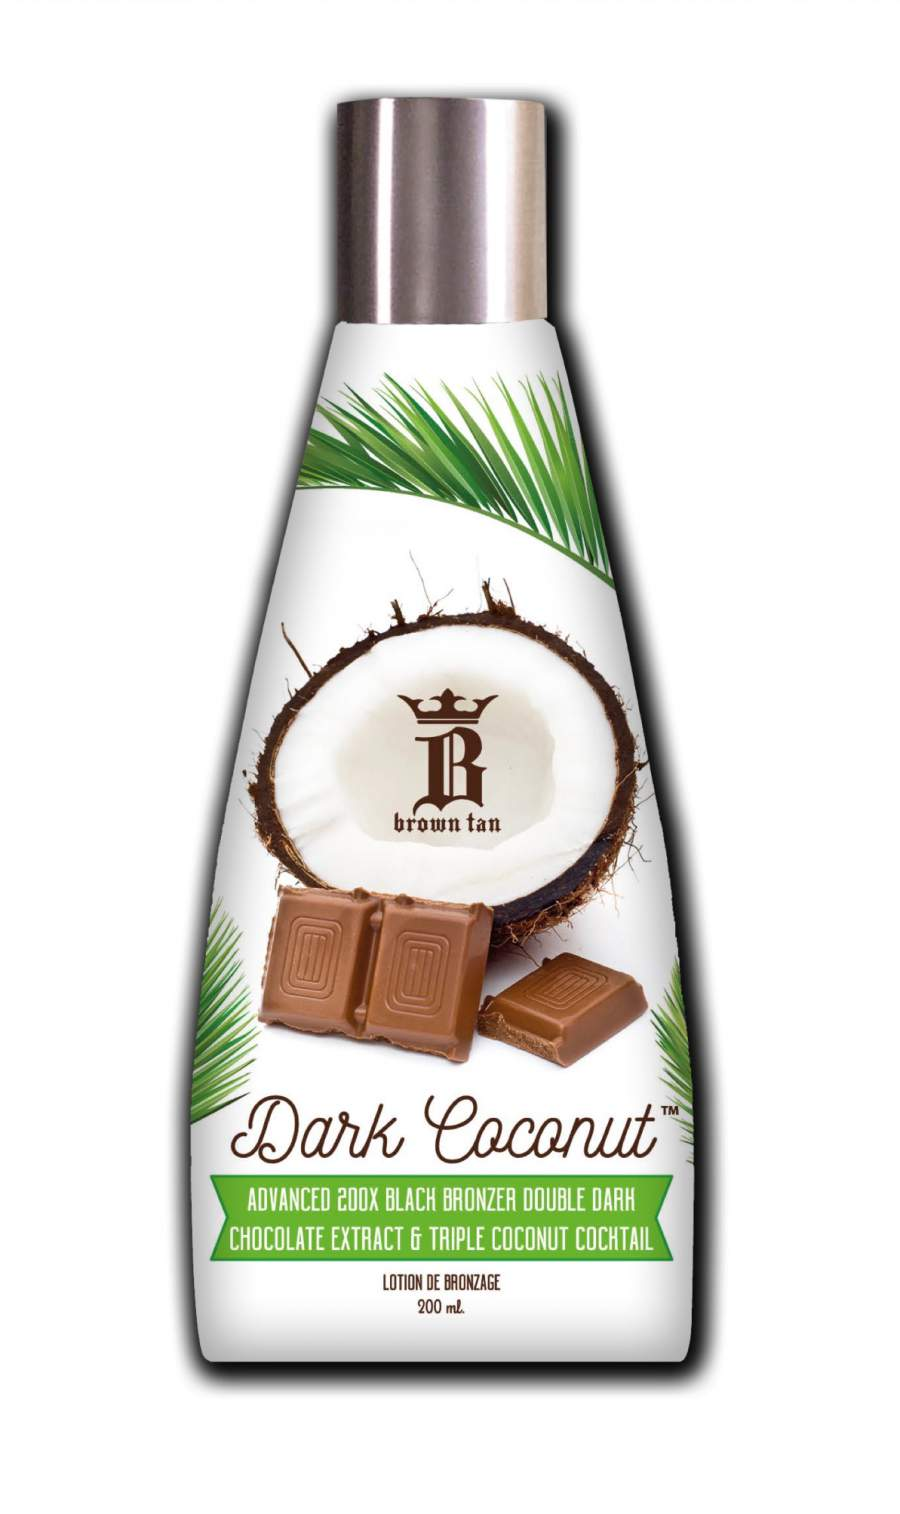 DARK COCONUT 200x (200 ml)